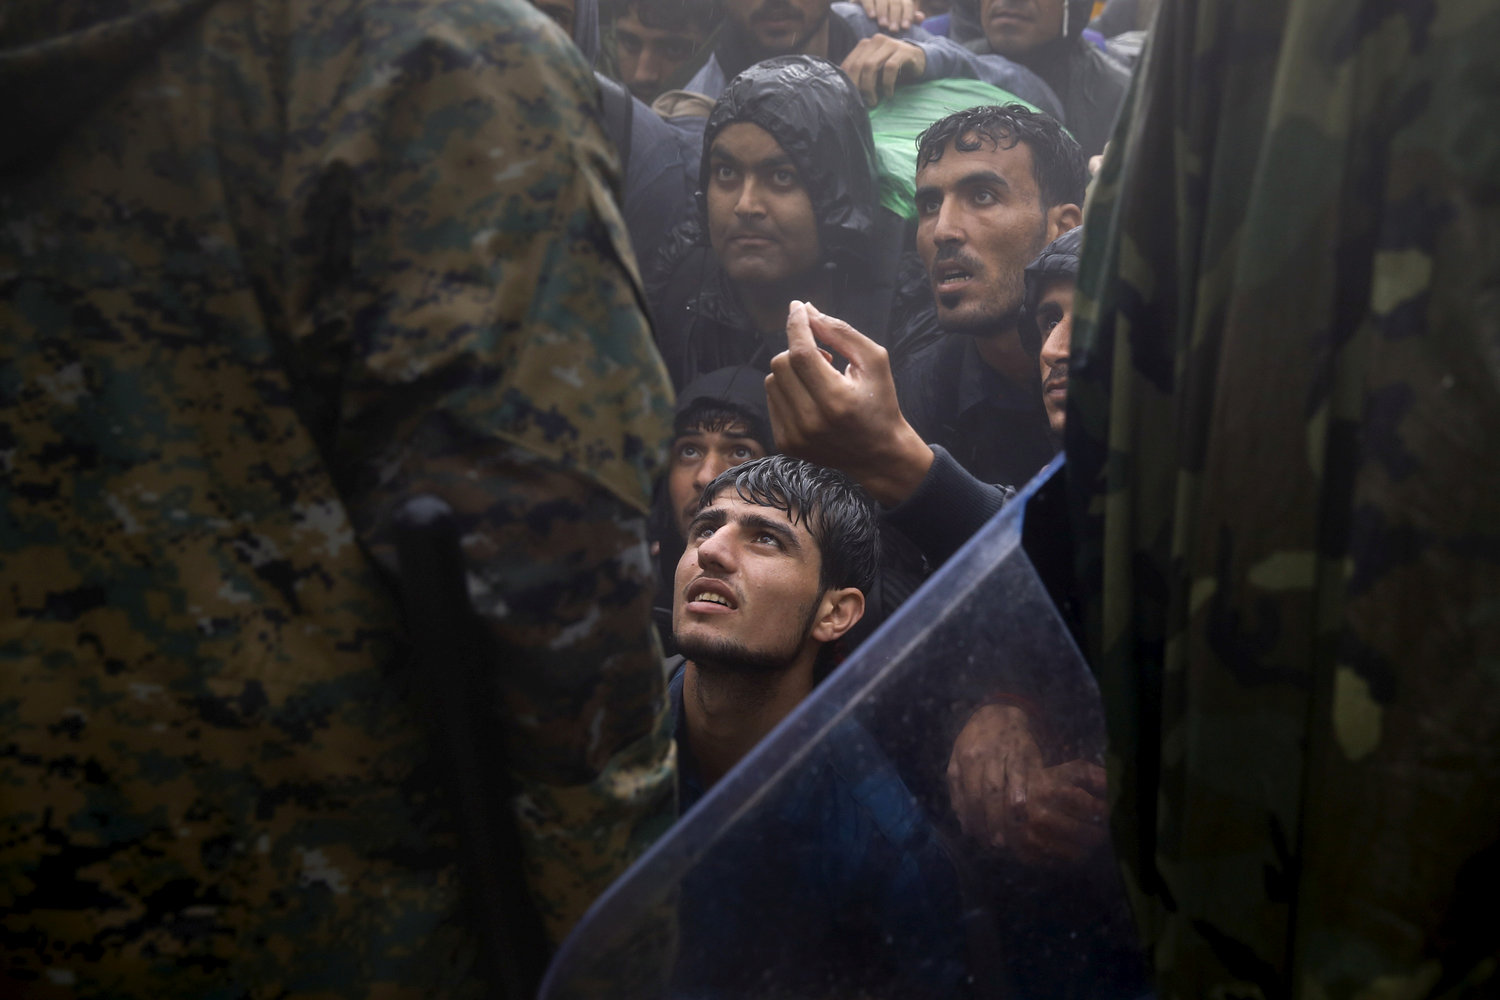 Migrants and refugees beg Macedonian policemen to allow passage to cross the border from Greece into Macedonia during a rainstorm, near the Greek village of Idomeni, September 10, 2015. REUTERS/Yannis Behrakis/File Photo